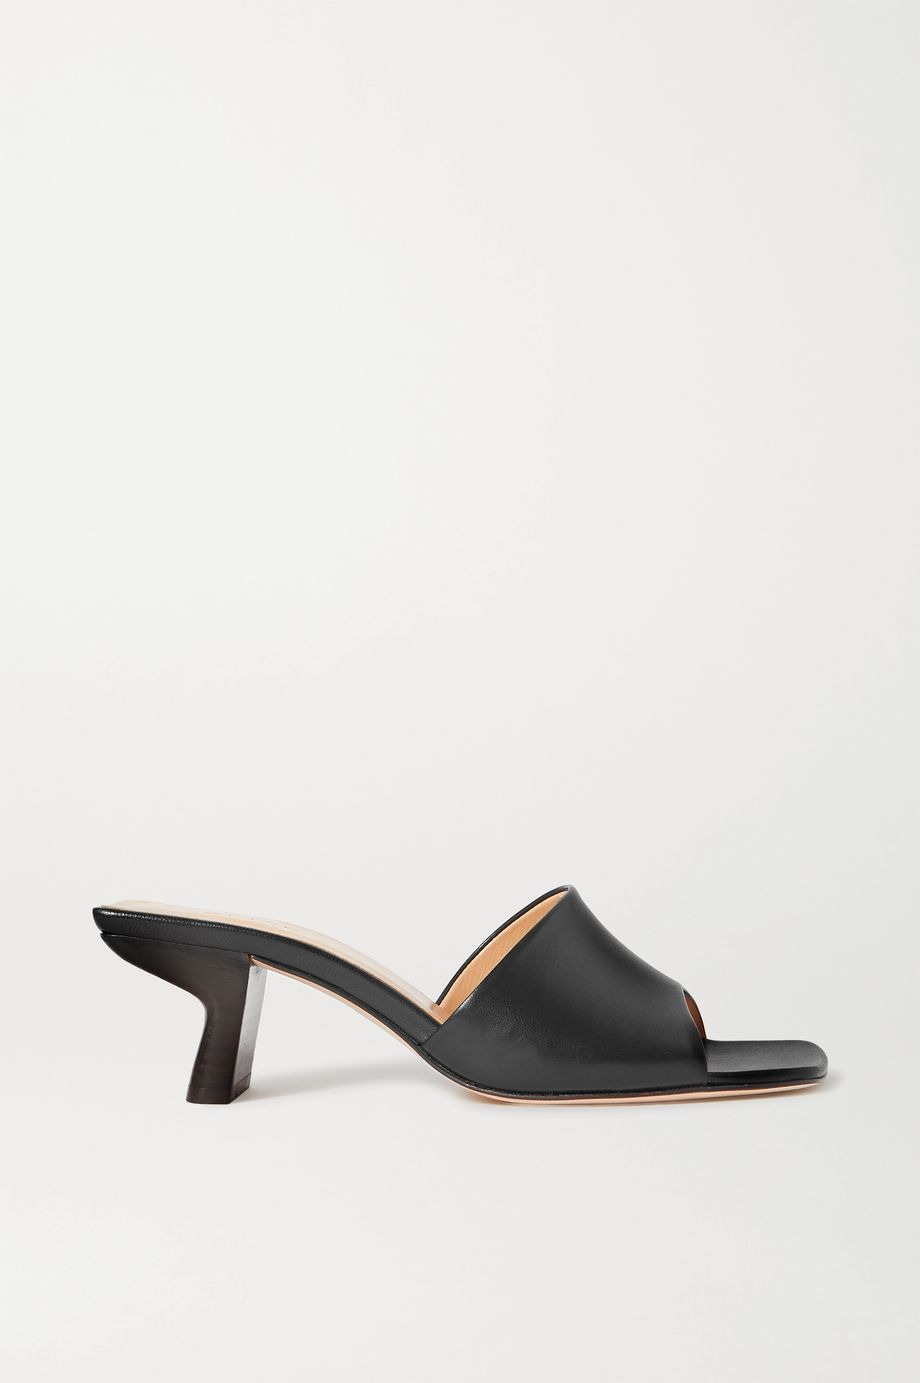 BY FAR Lily leather mules